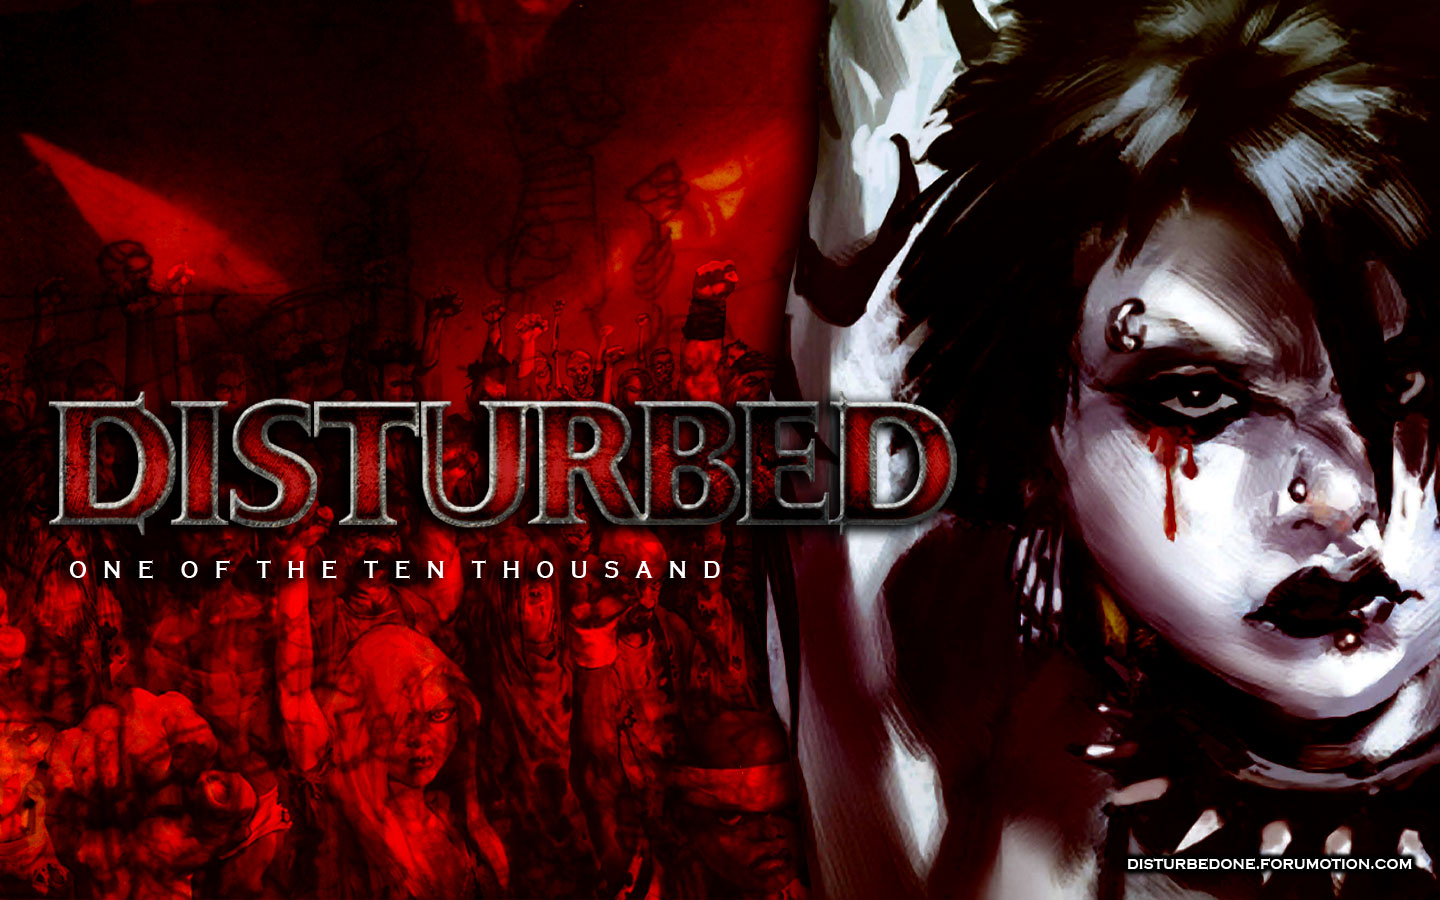 Ten thousand fist by disturbed against